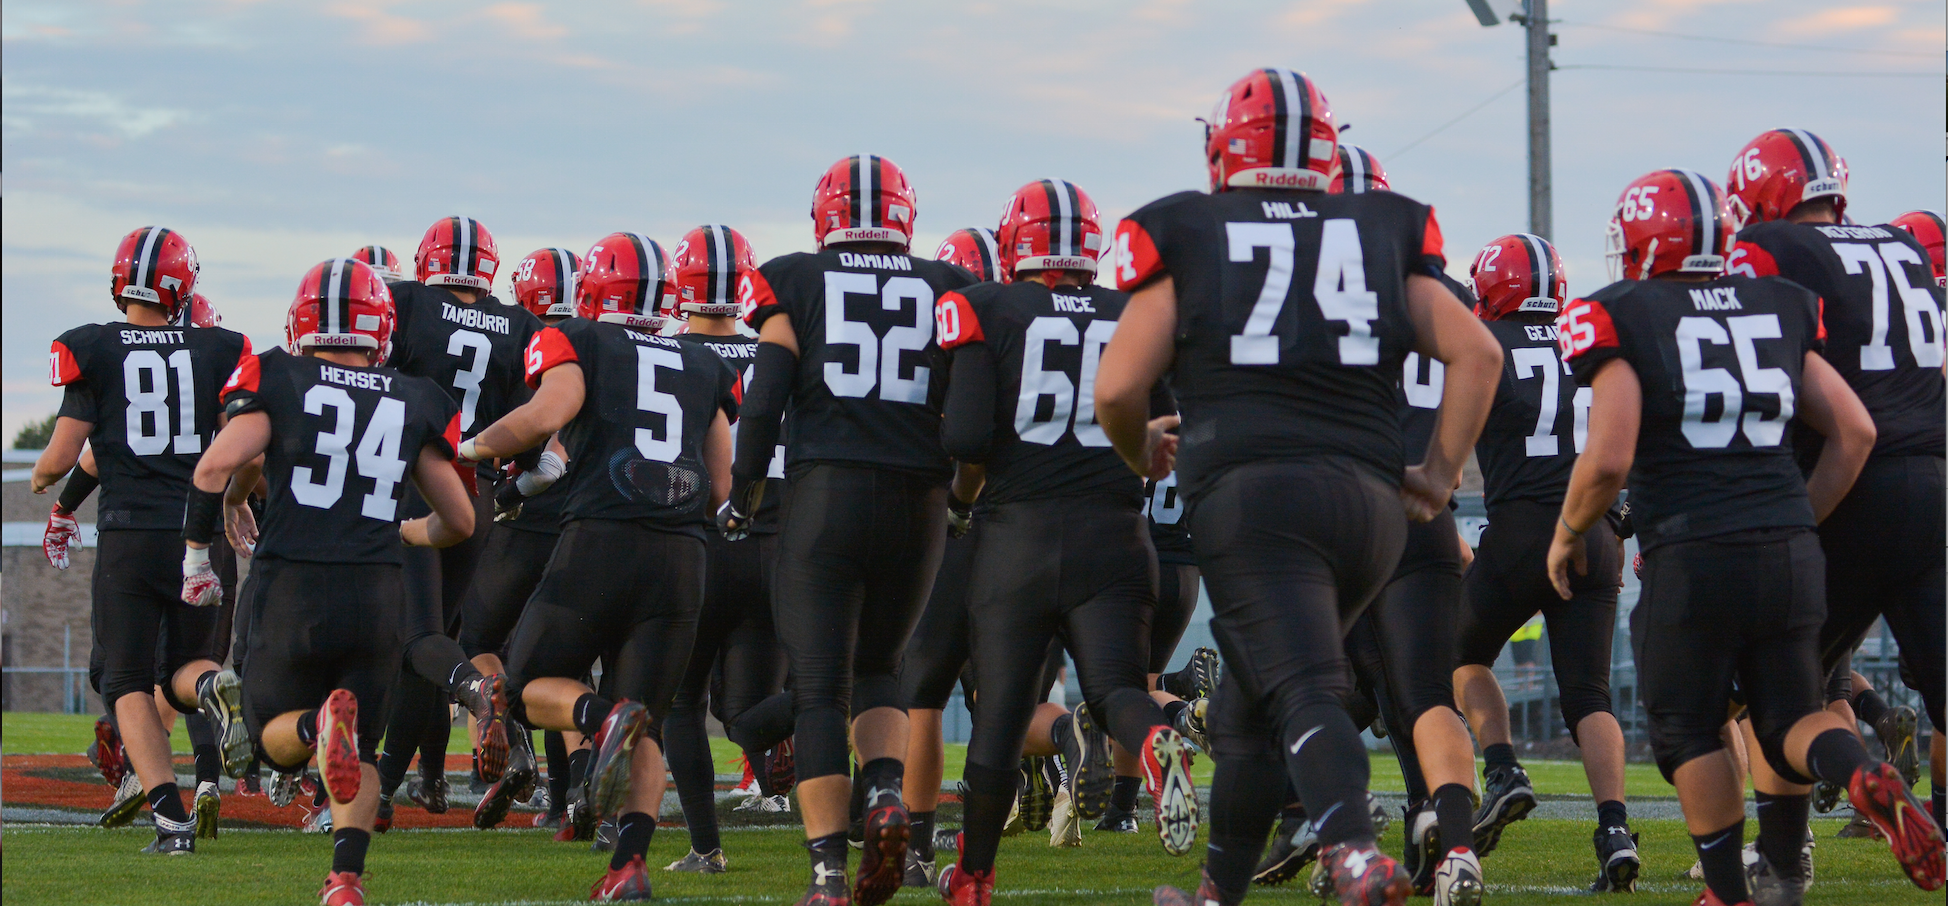 The lancaster high school football team insists it is not focused on